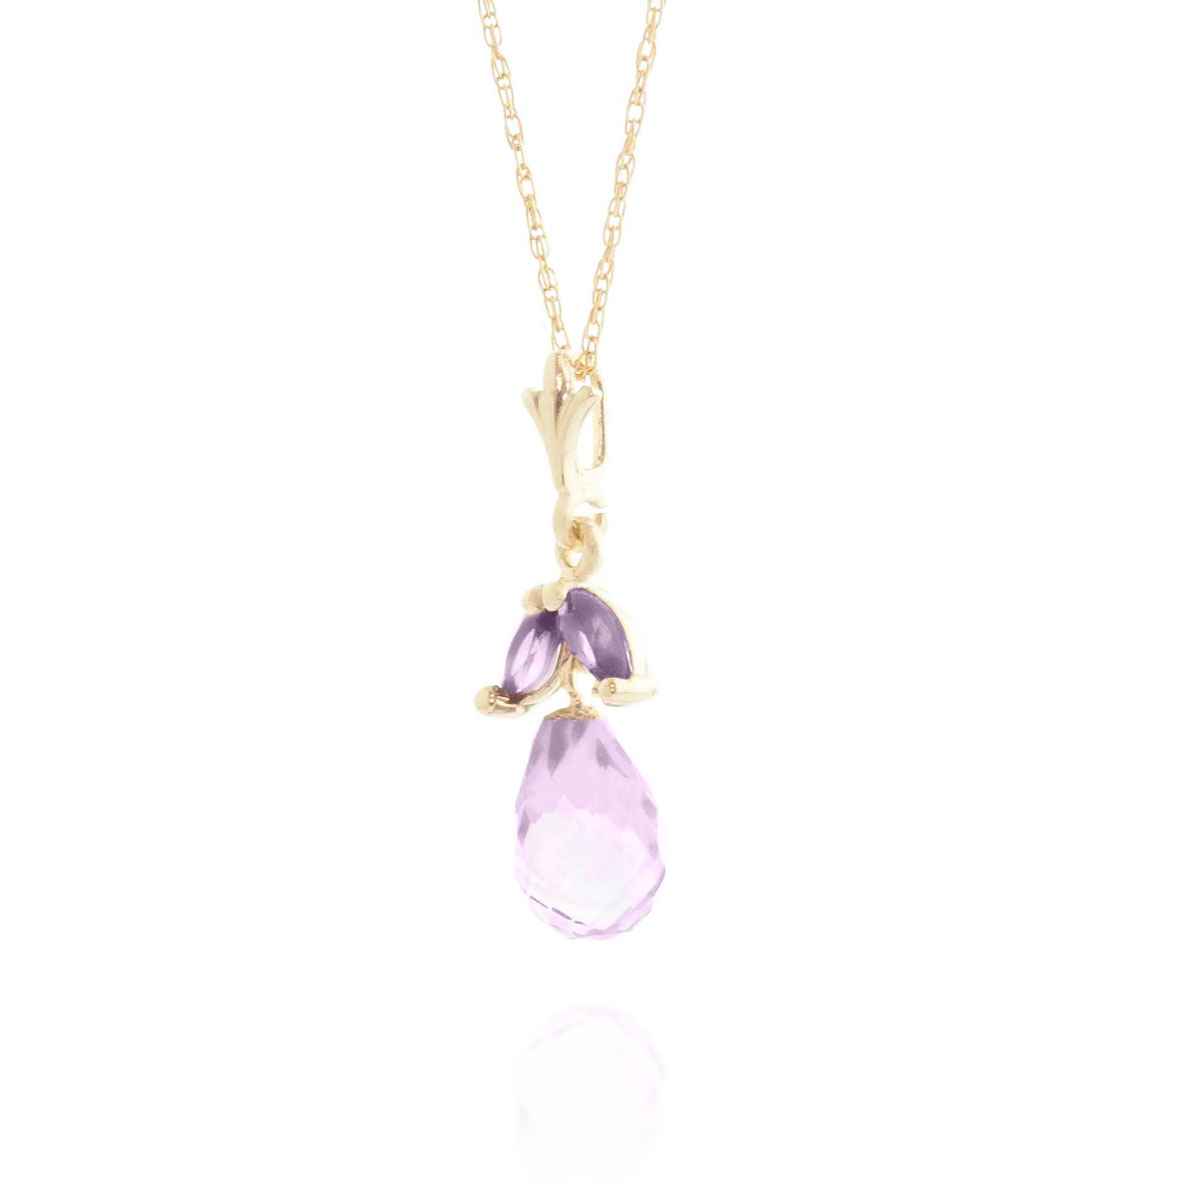 Amethyst Snowdrop Pendant Necklace 1.7 ctw in 9ct Gold